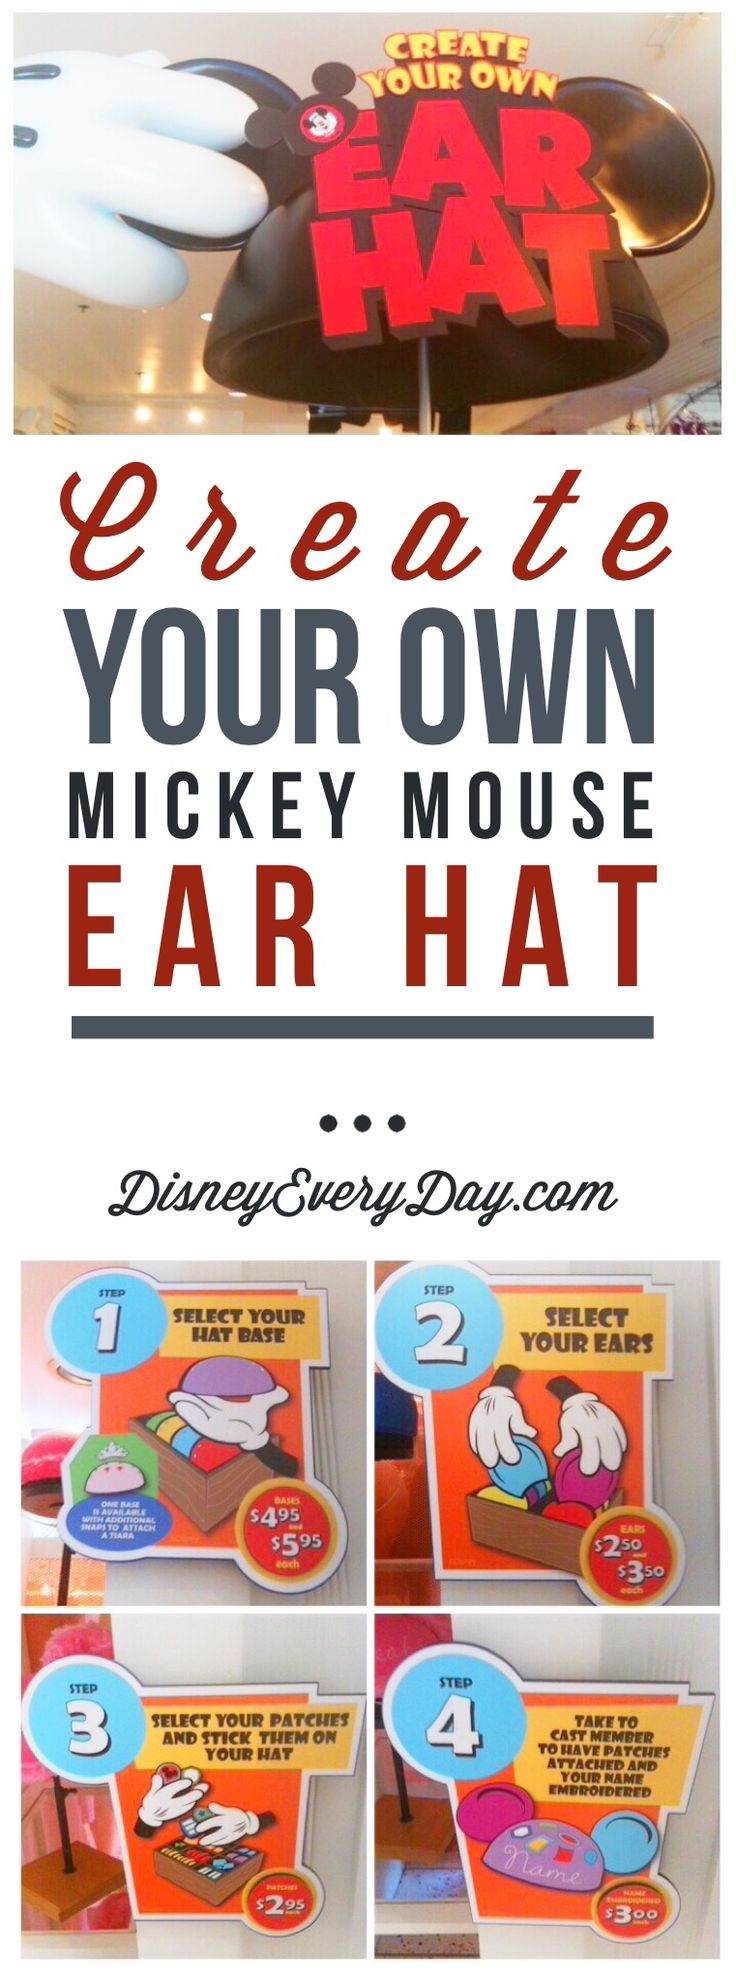 Create Your Own Mickey Mouse Ears                                                                                                                                                     More